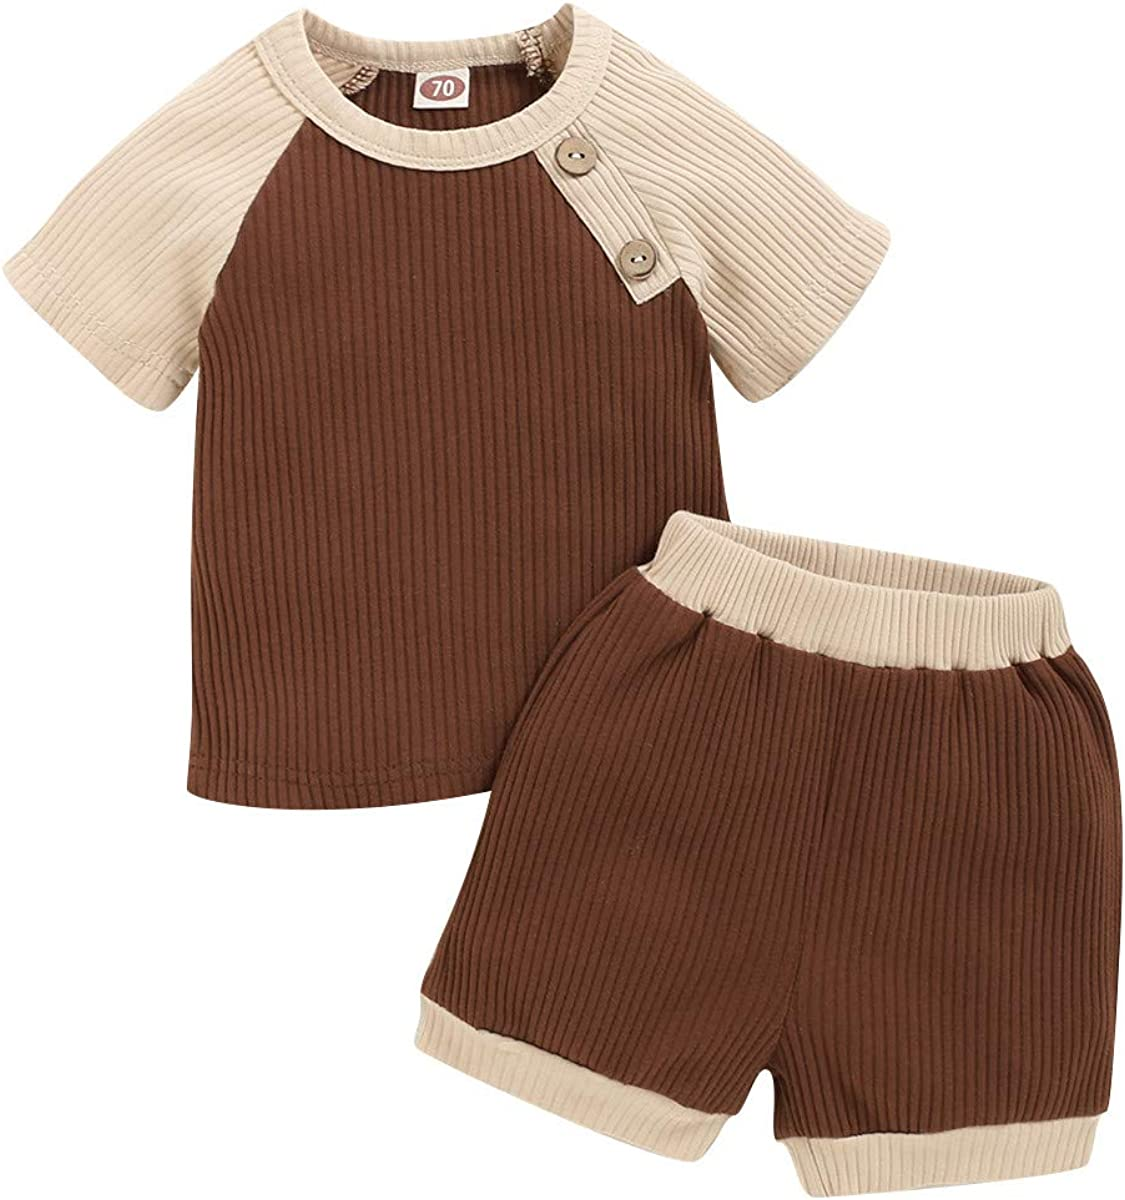 Baby Boy Clothes Toddler Boys Clothes Short Sleeve T Shirt Baby Shorts Infant Boys Outfit Set